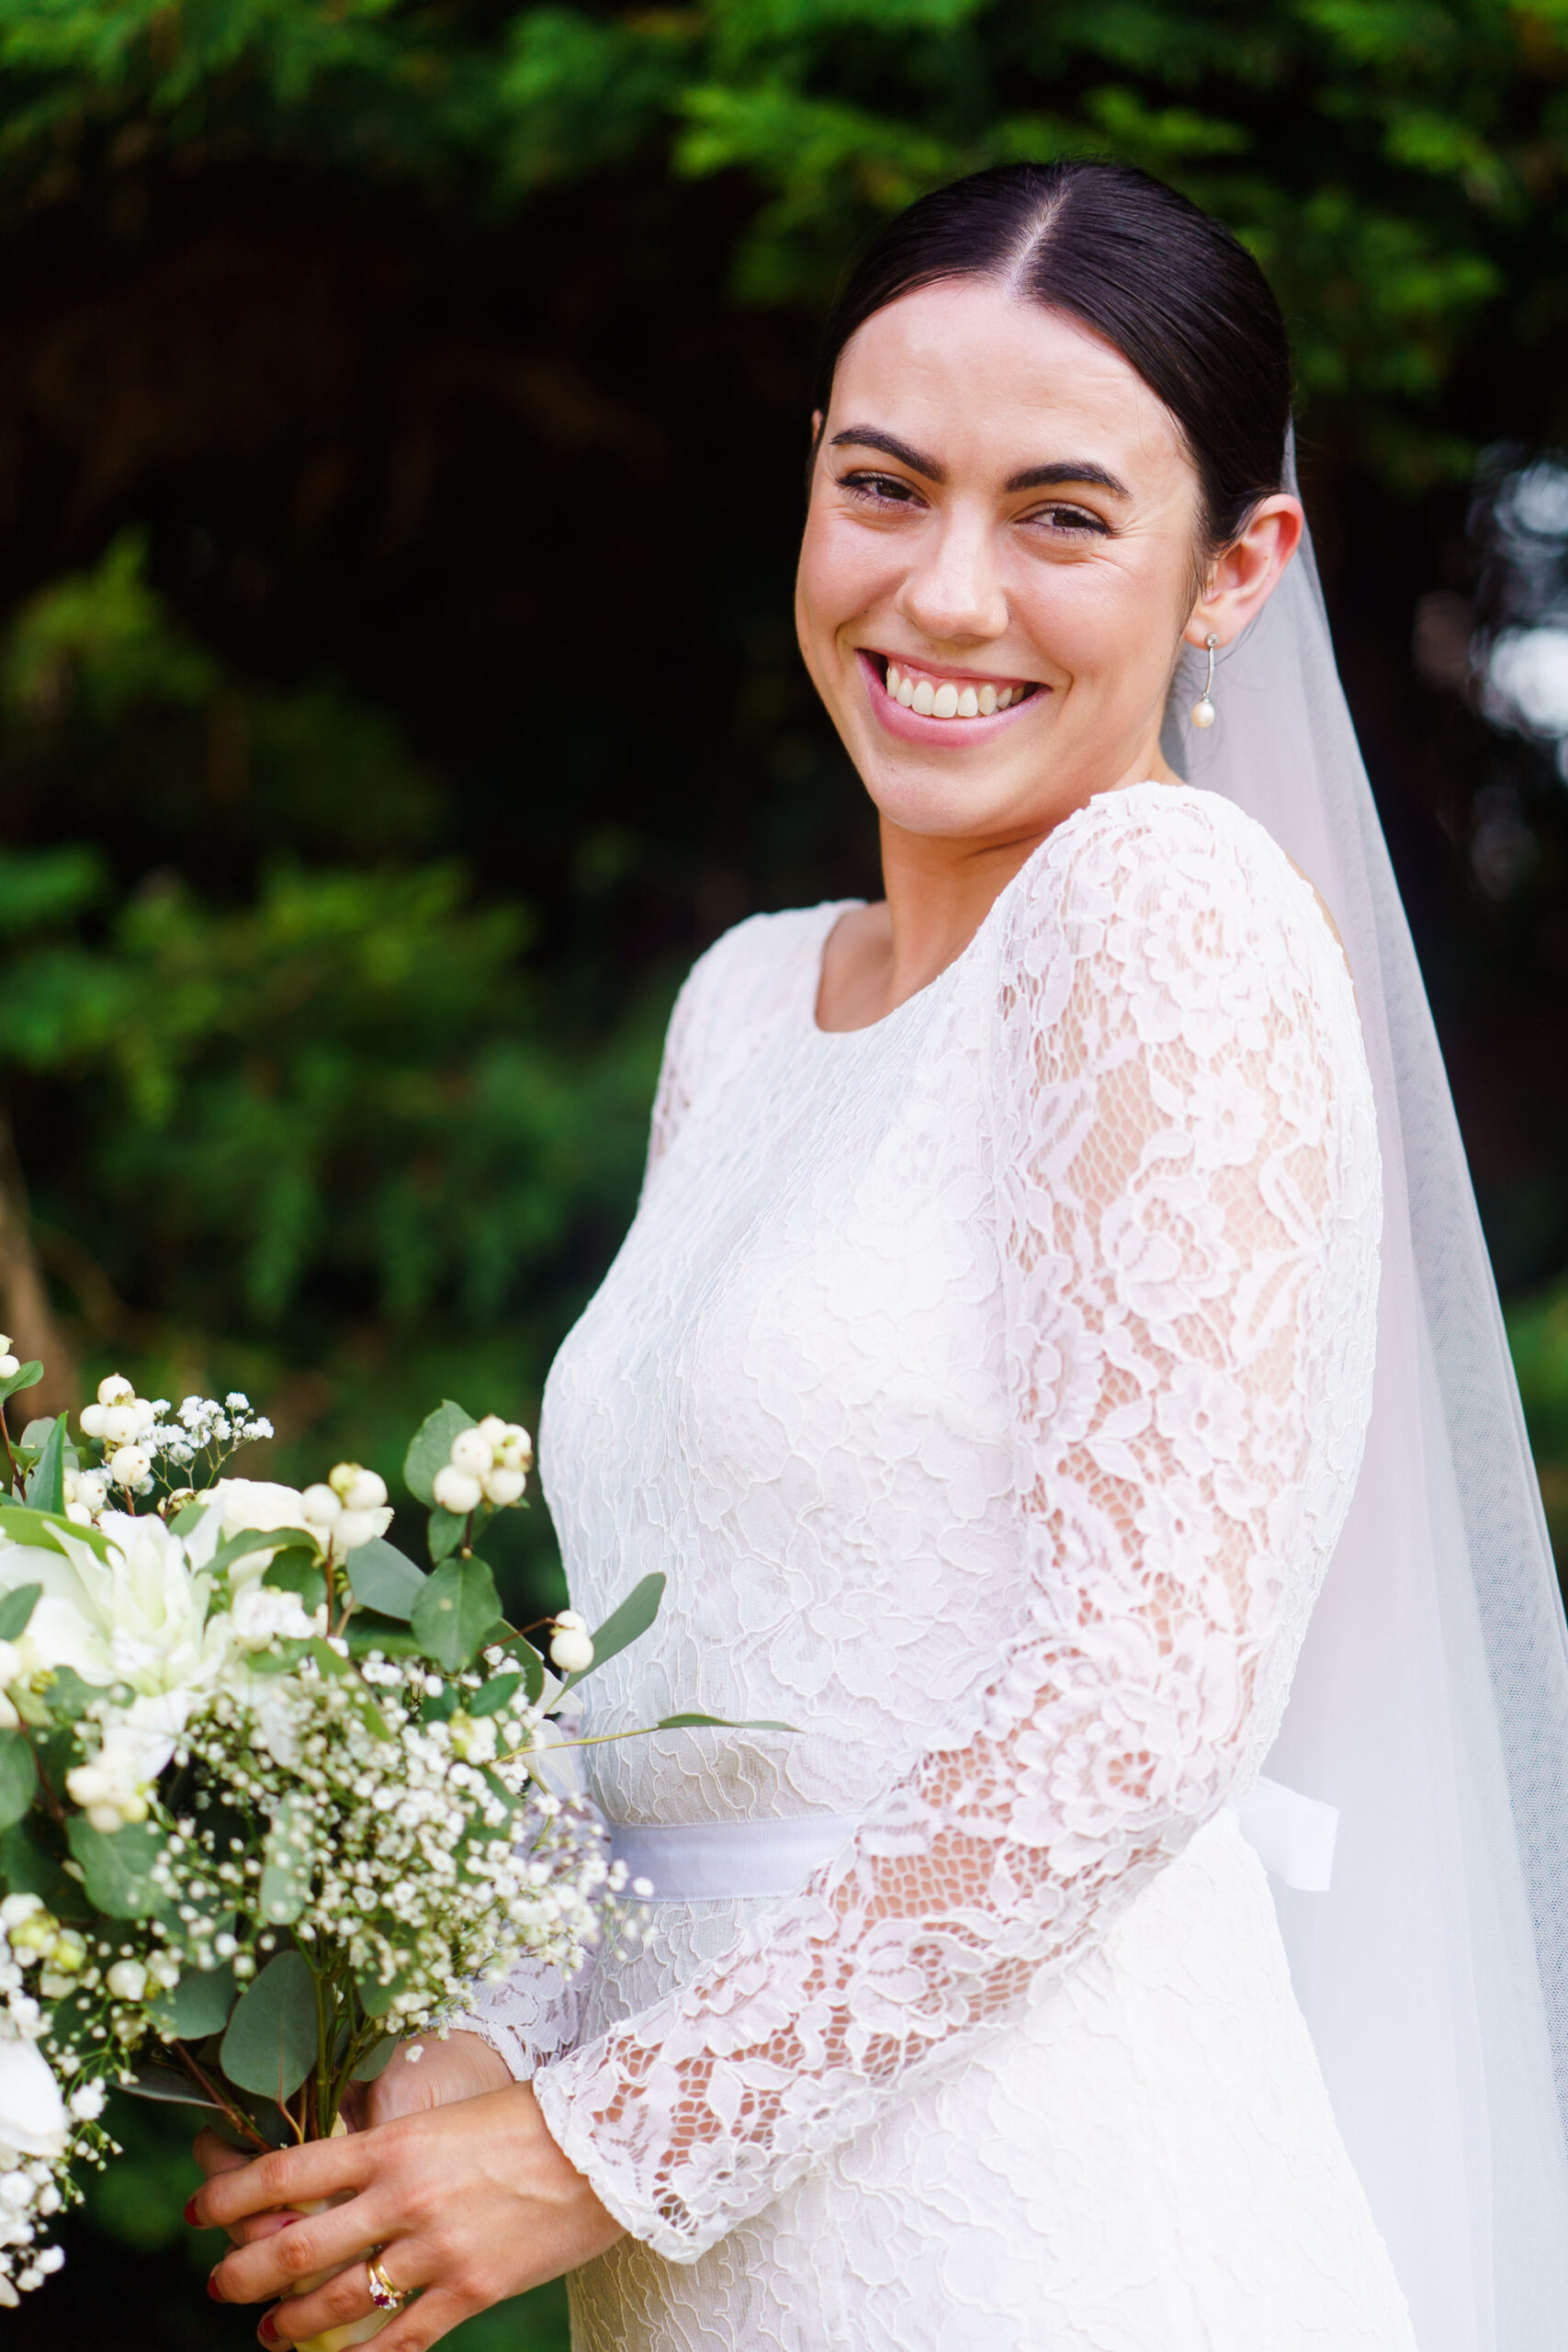 portrait of bride and lace dress outside bourne valley inn